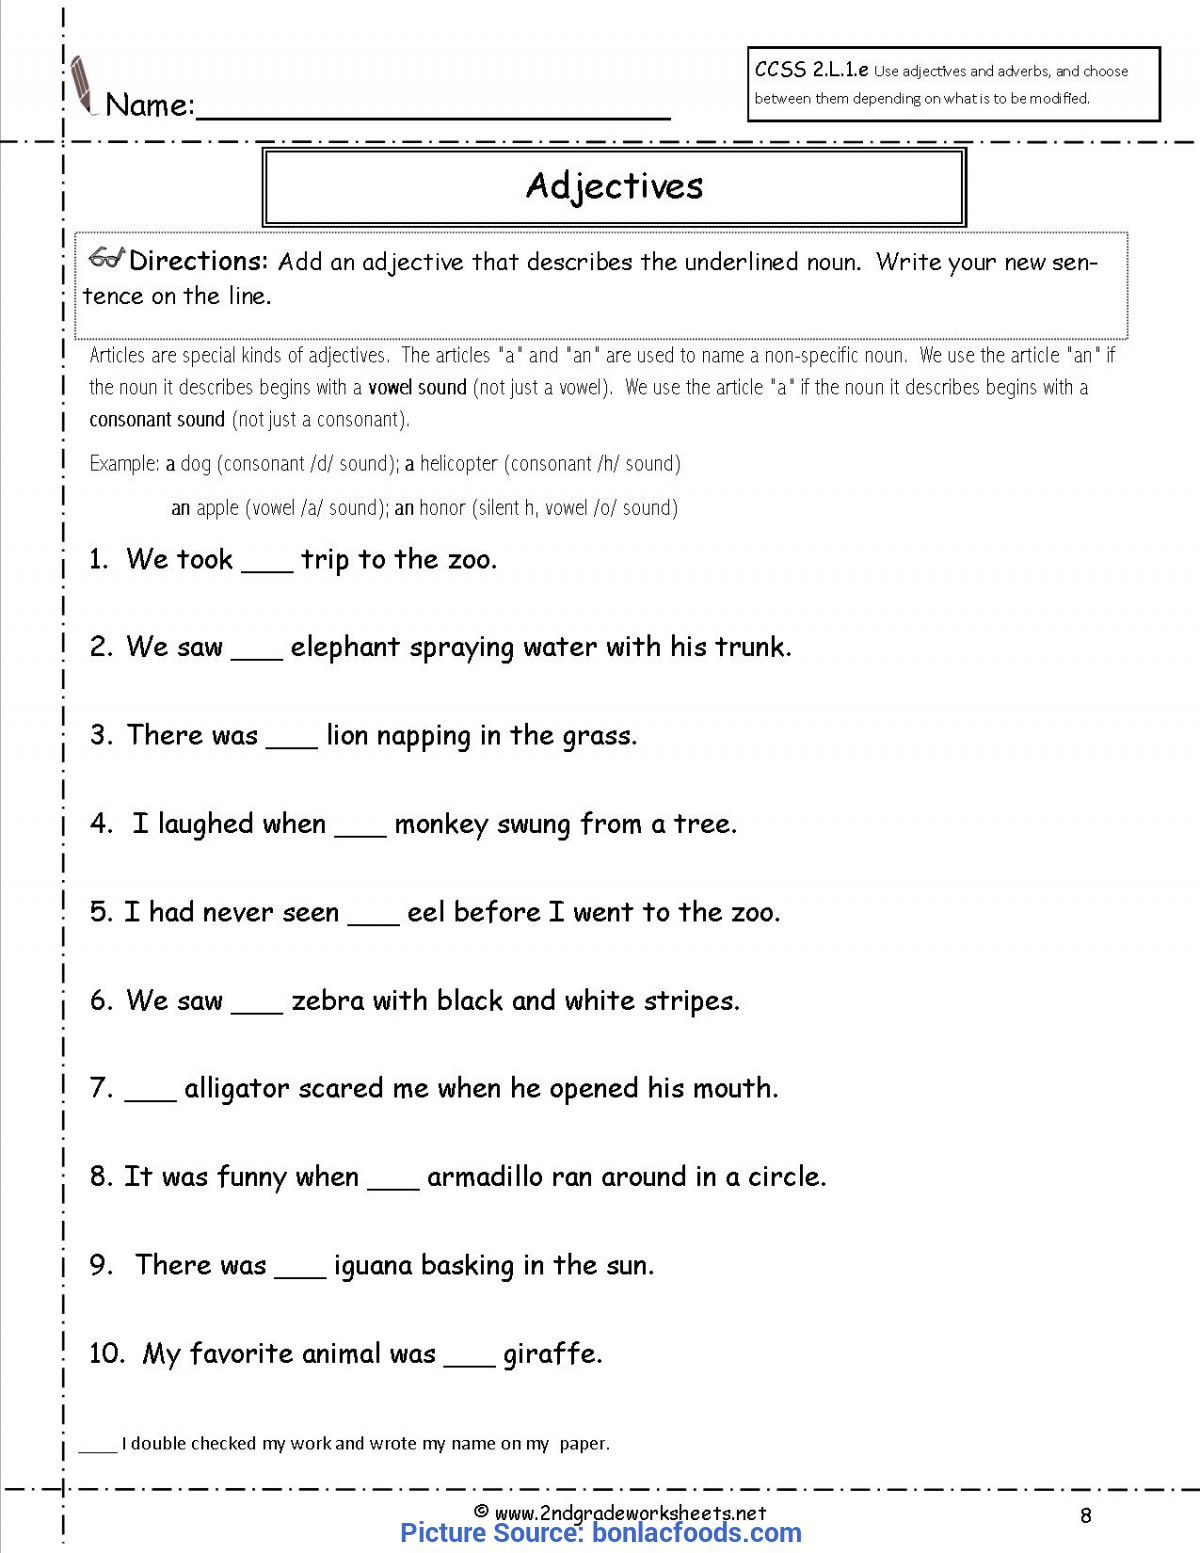 3rd Grade Adjectives Worksheets Valuable 2nd Grade Lesson Plans Adjectives Worksheets for